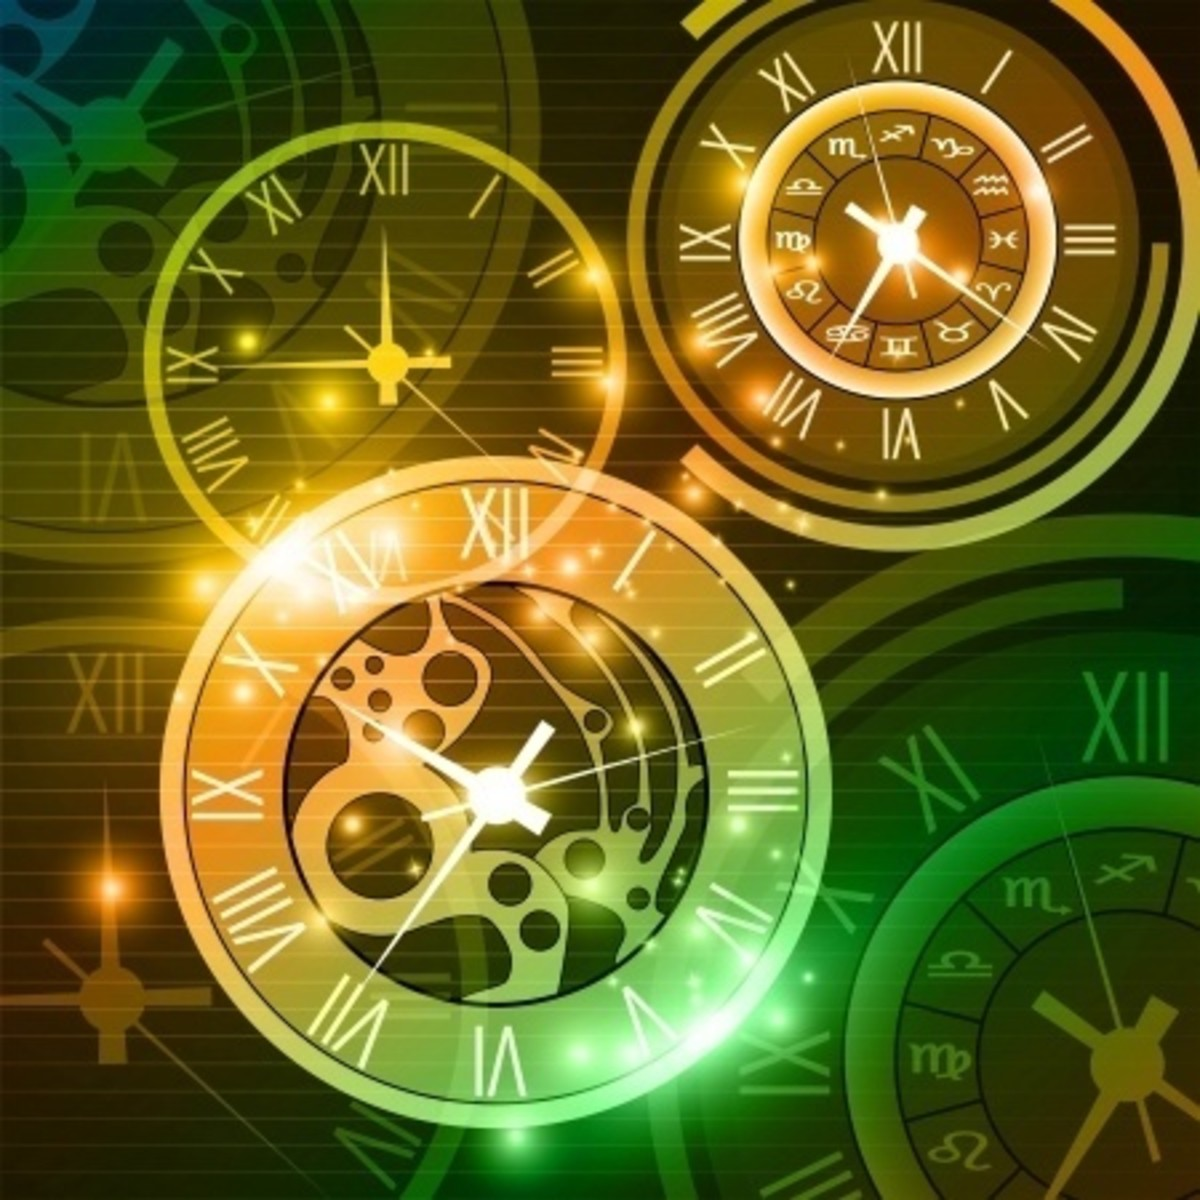 What Are Surprising Results From the Physics of Time?